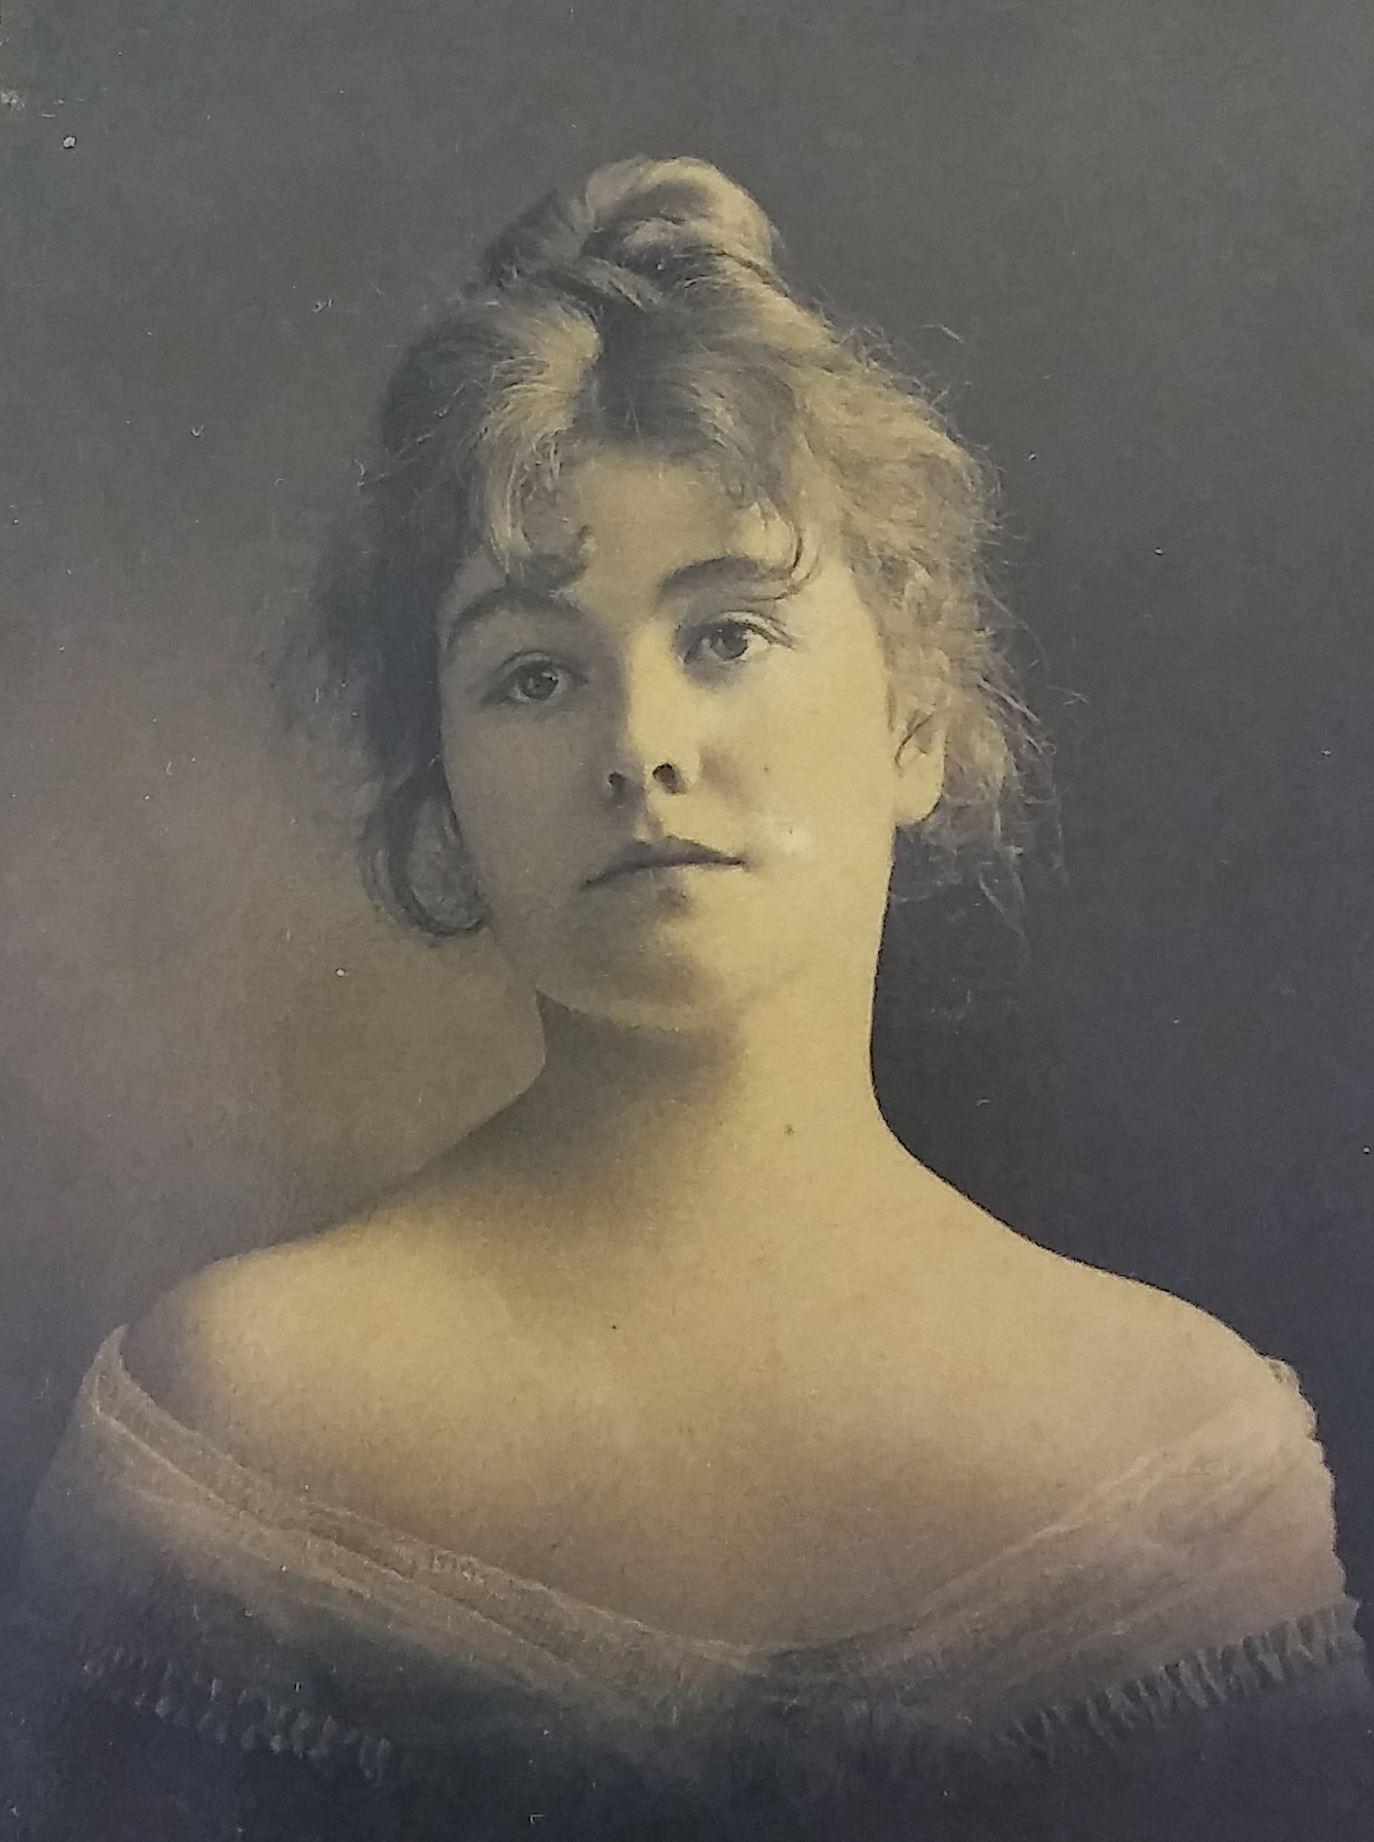 black and white studio portrait photograph of illustrator Rose O'Neill taken at age 21 to 26 circ